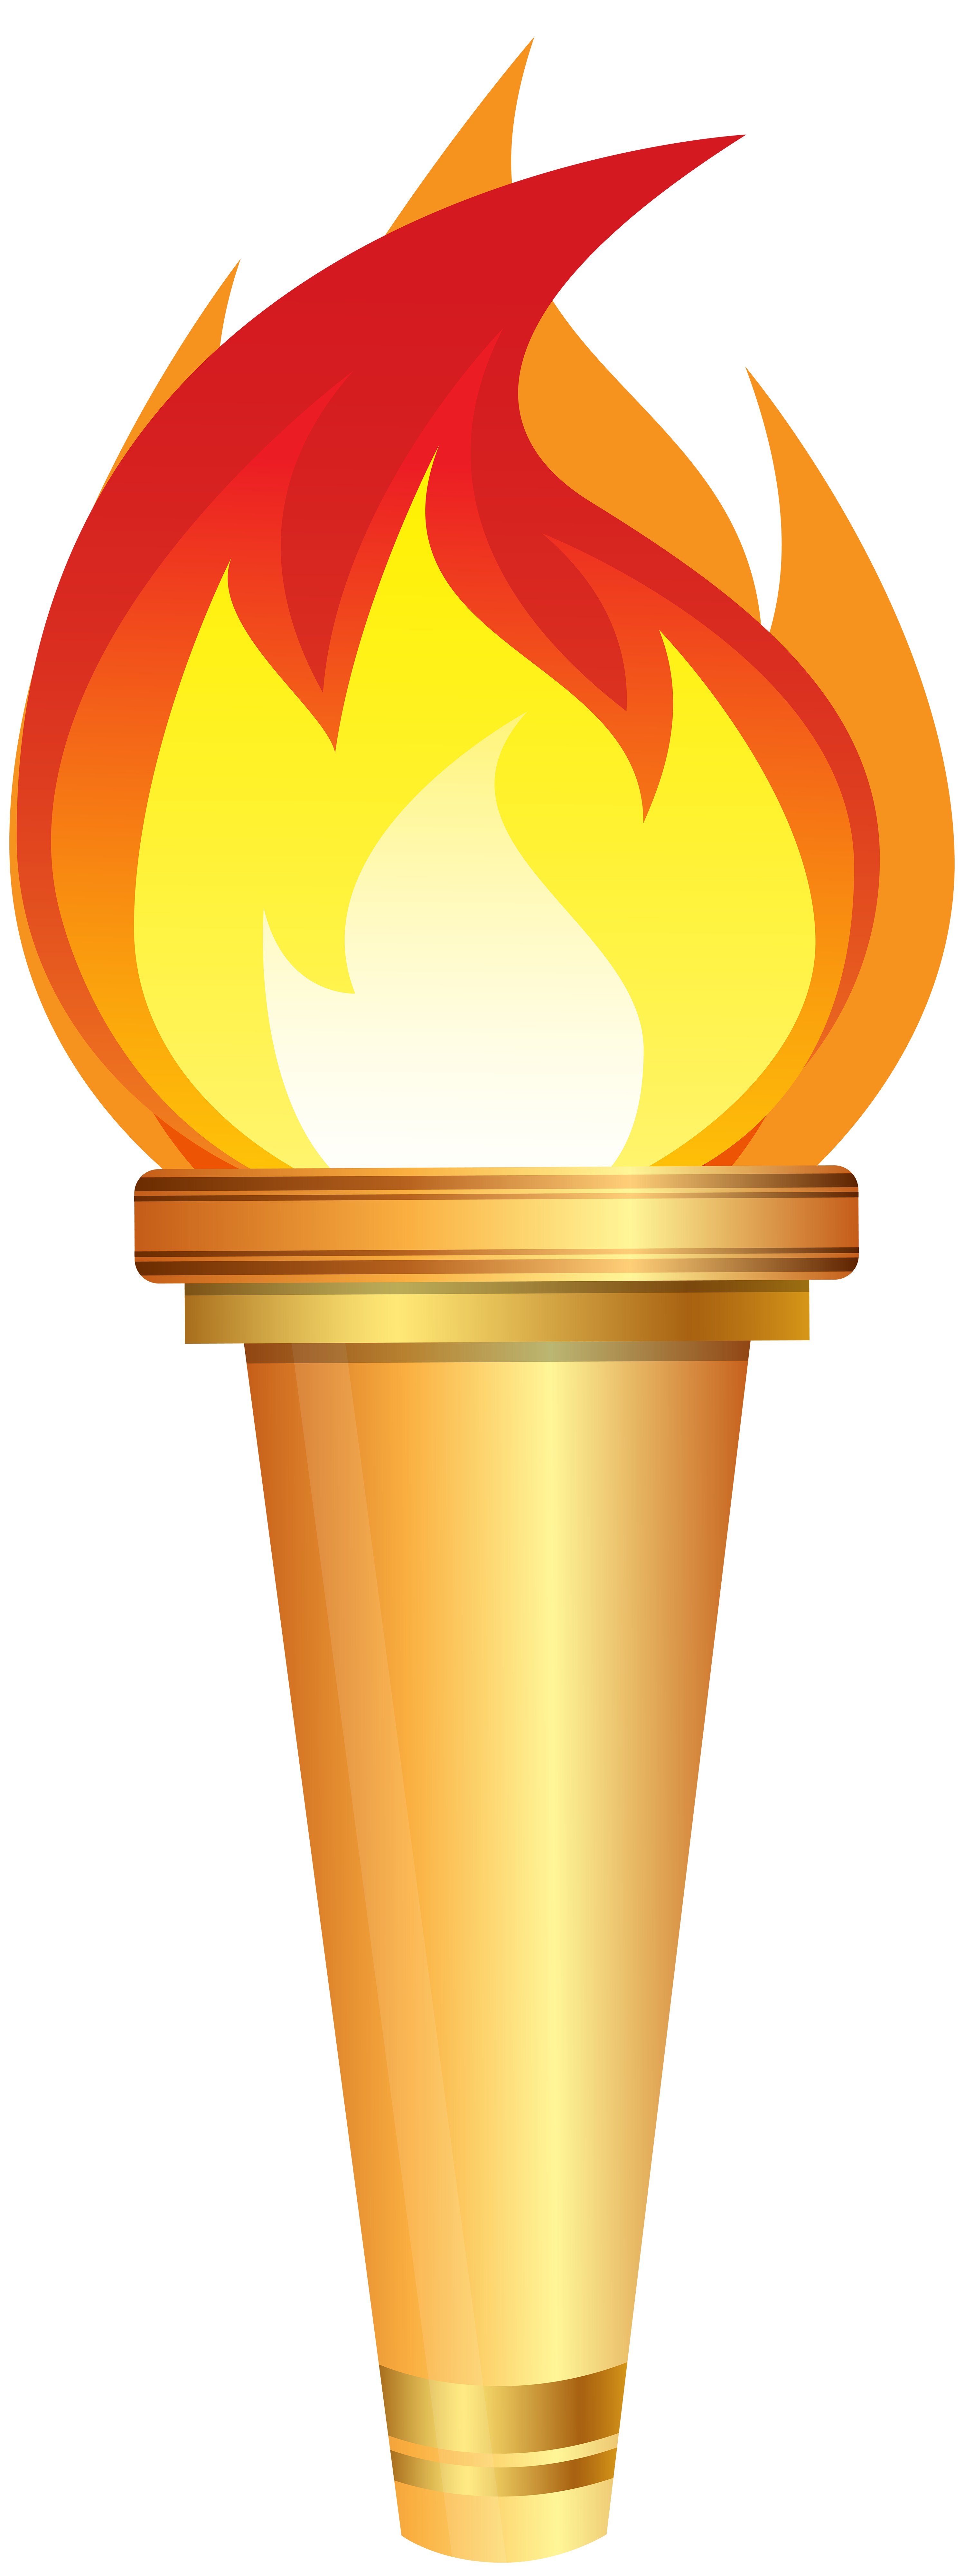 Torch clipart Yopriceville Torch Image PNG Tags: